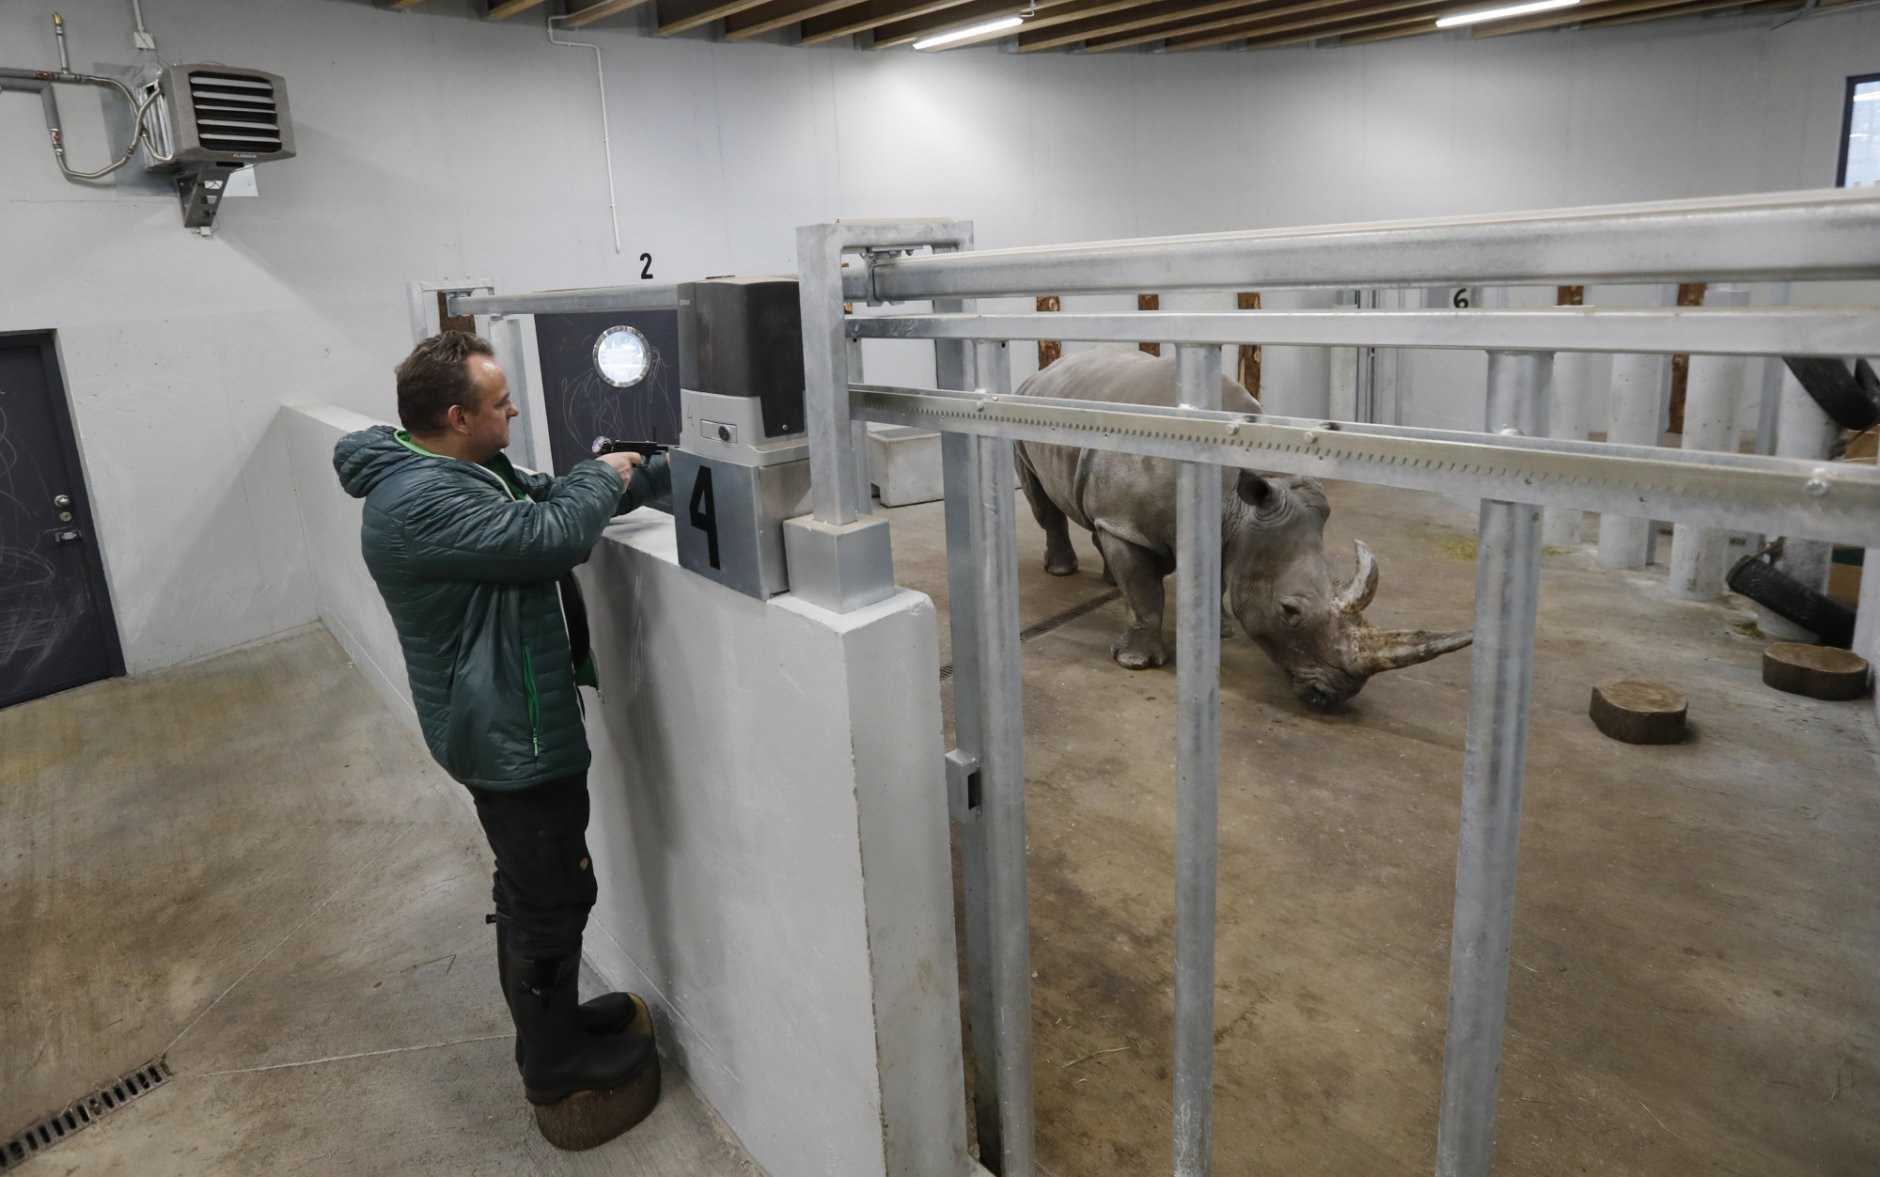 Anesthesiologists Frank Goeritz shoots a tranquilizing dart to sedate female southern white rhino, 17-year-old Hope, so team of experts can harvest its eggs at a zoo park in Chorzow, Poland, Wednesday, Feb. 13, 2019. (AP Photo/Petr David Josek)